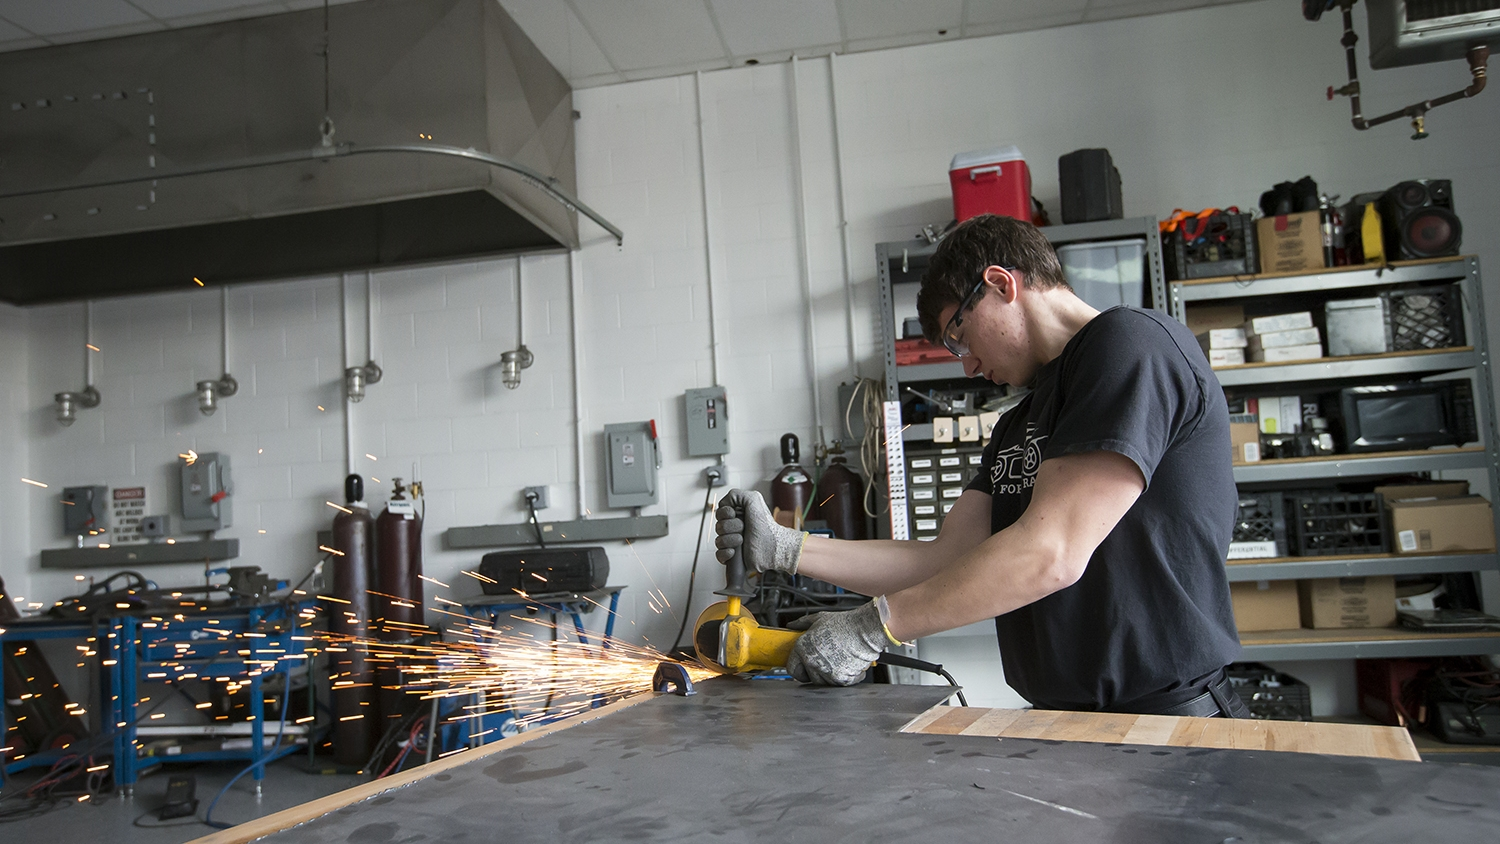 Sparks flying as a student uses a saw.